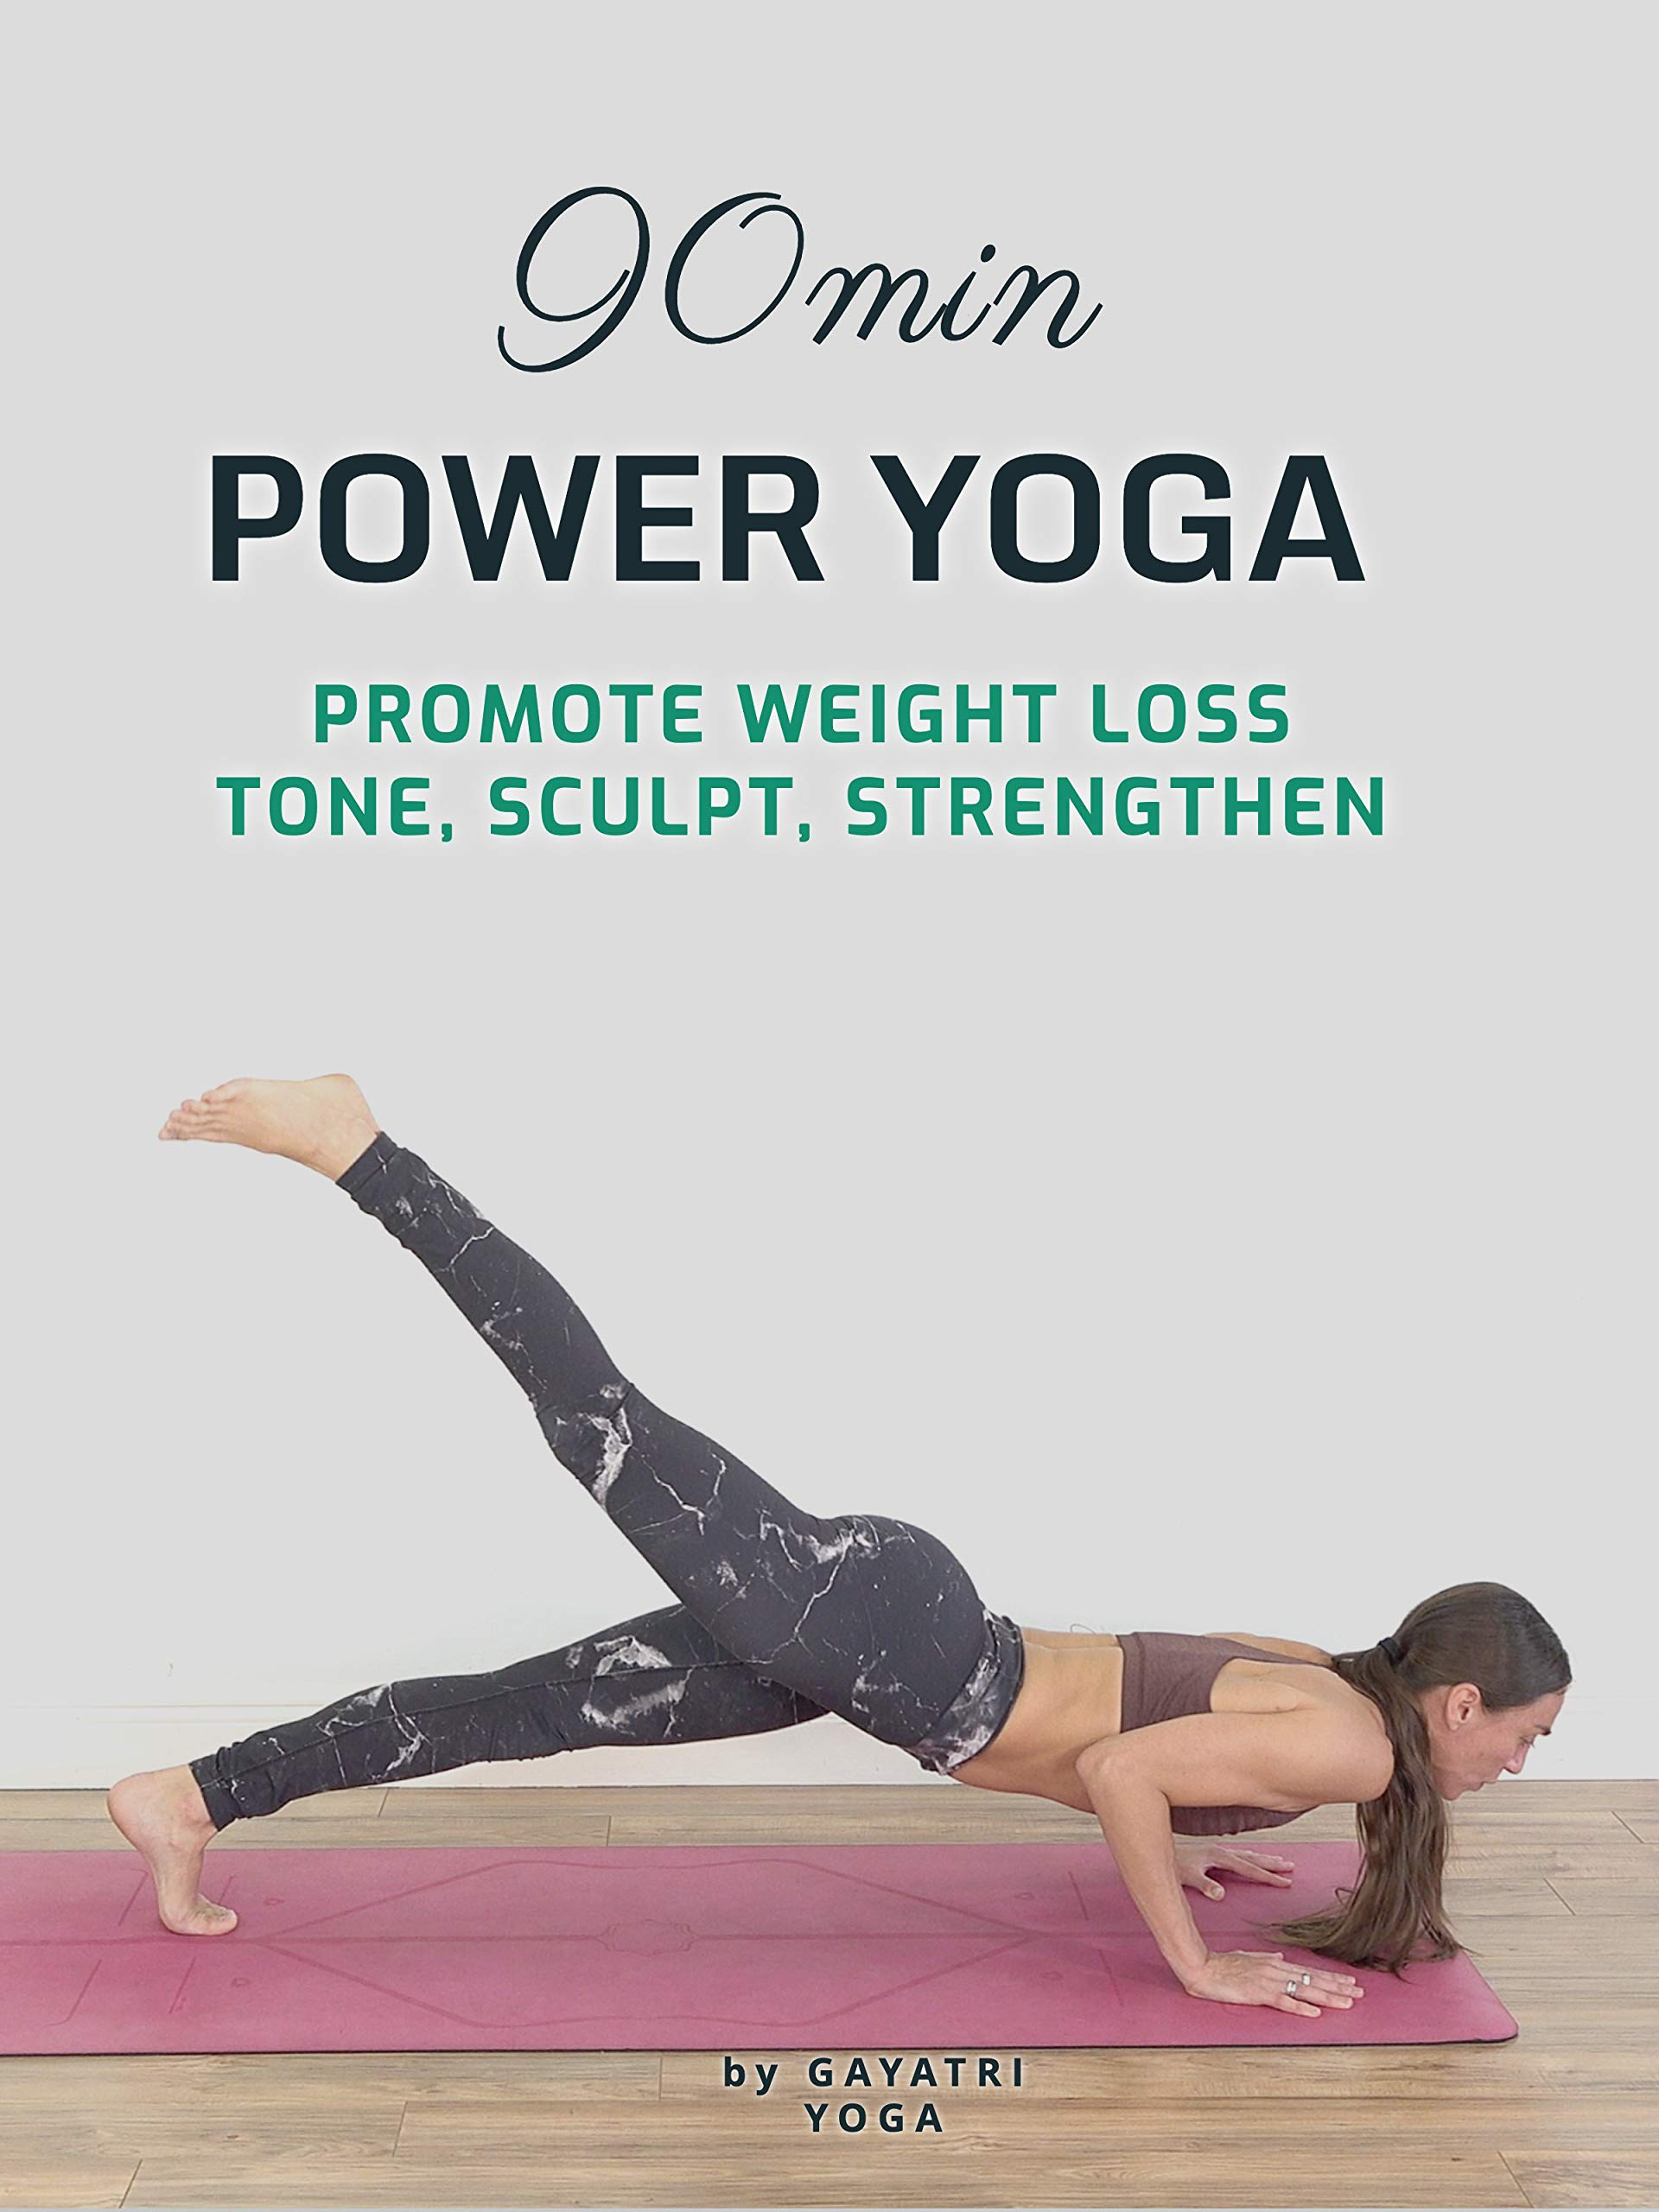 90 Min Power Yoga - Promote Weight Loss, Tone, Sculpt, Strengthen - Gayatri Yoga